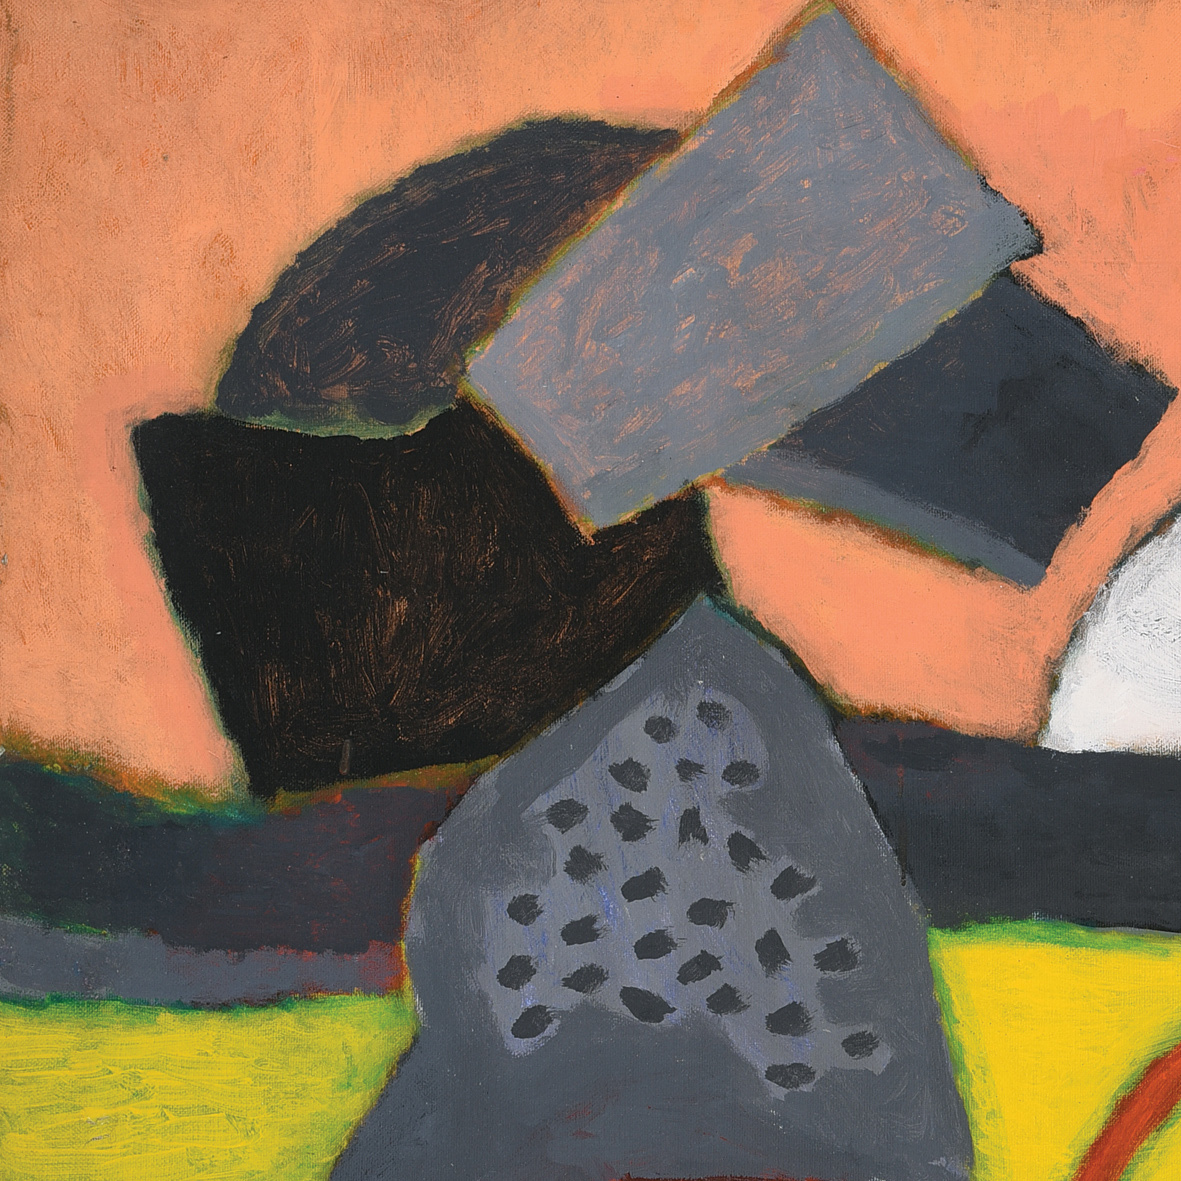 Nashar, By the Shore, oil on canvas, 64.5 x 94 cm, 1987 (detail)